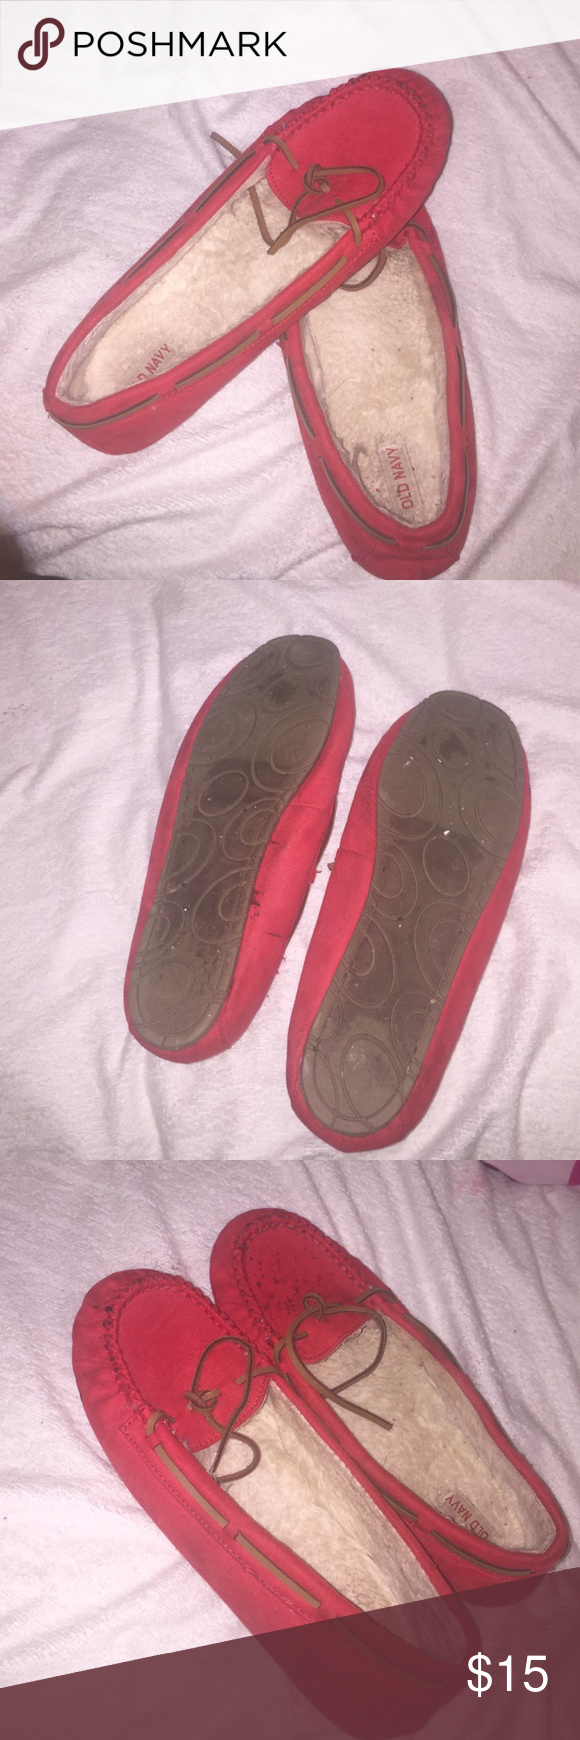 Bright red moccasins Need to be washed, and will be washed before shipping guaranteed. Size 10. Super fun and cute moccasins!  Fast shipper: same or next day shipping guaranteed. Feel free to make a REASONABLE offer loves! Old Navy Shoes Moccasins